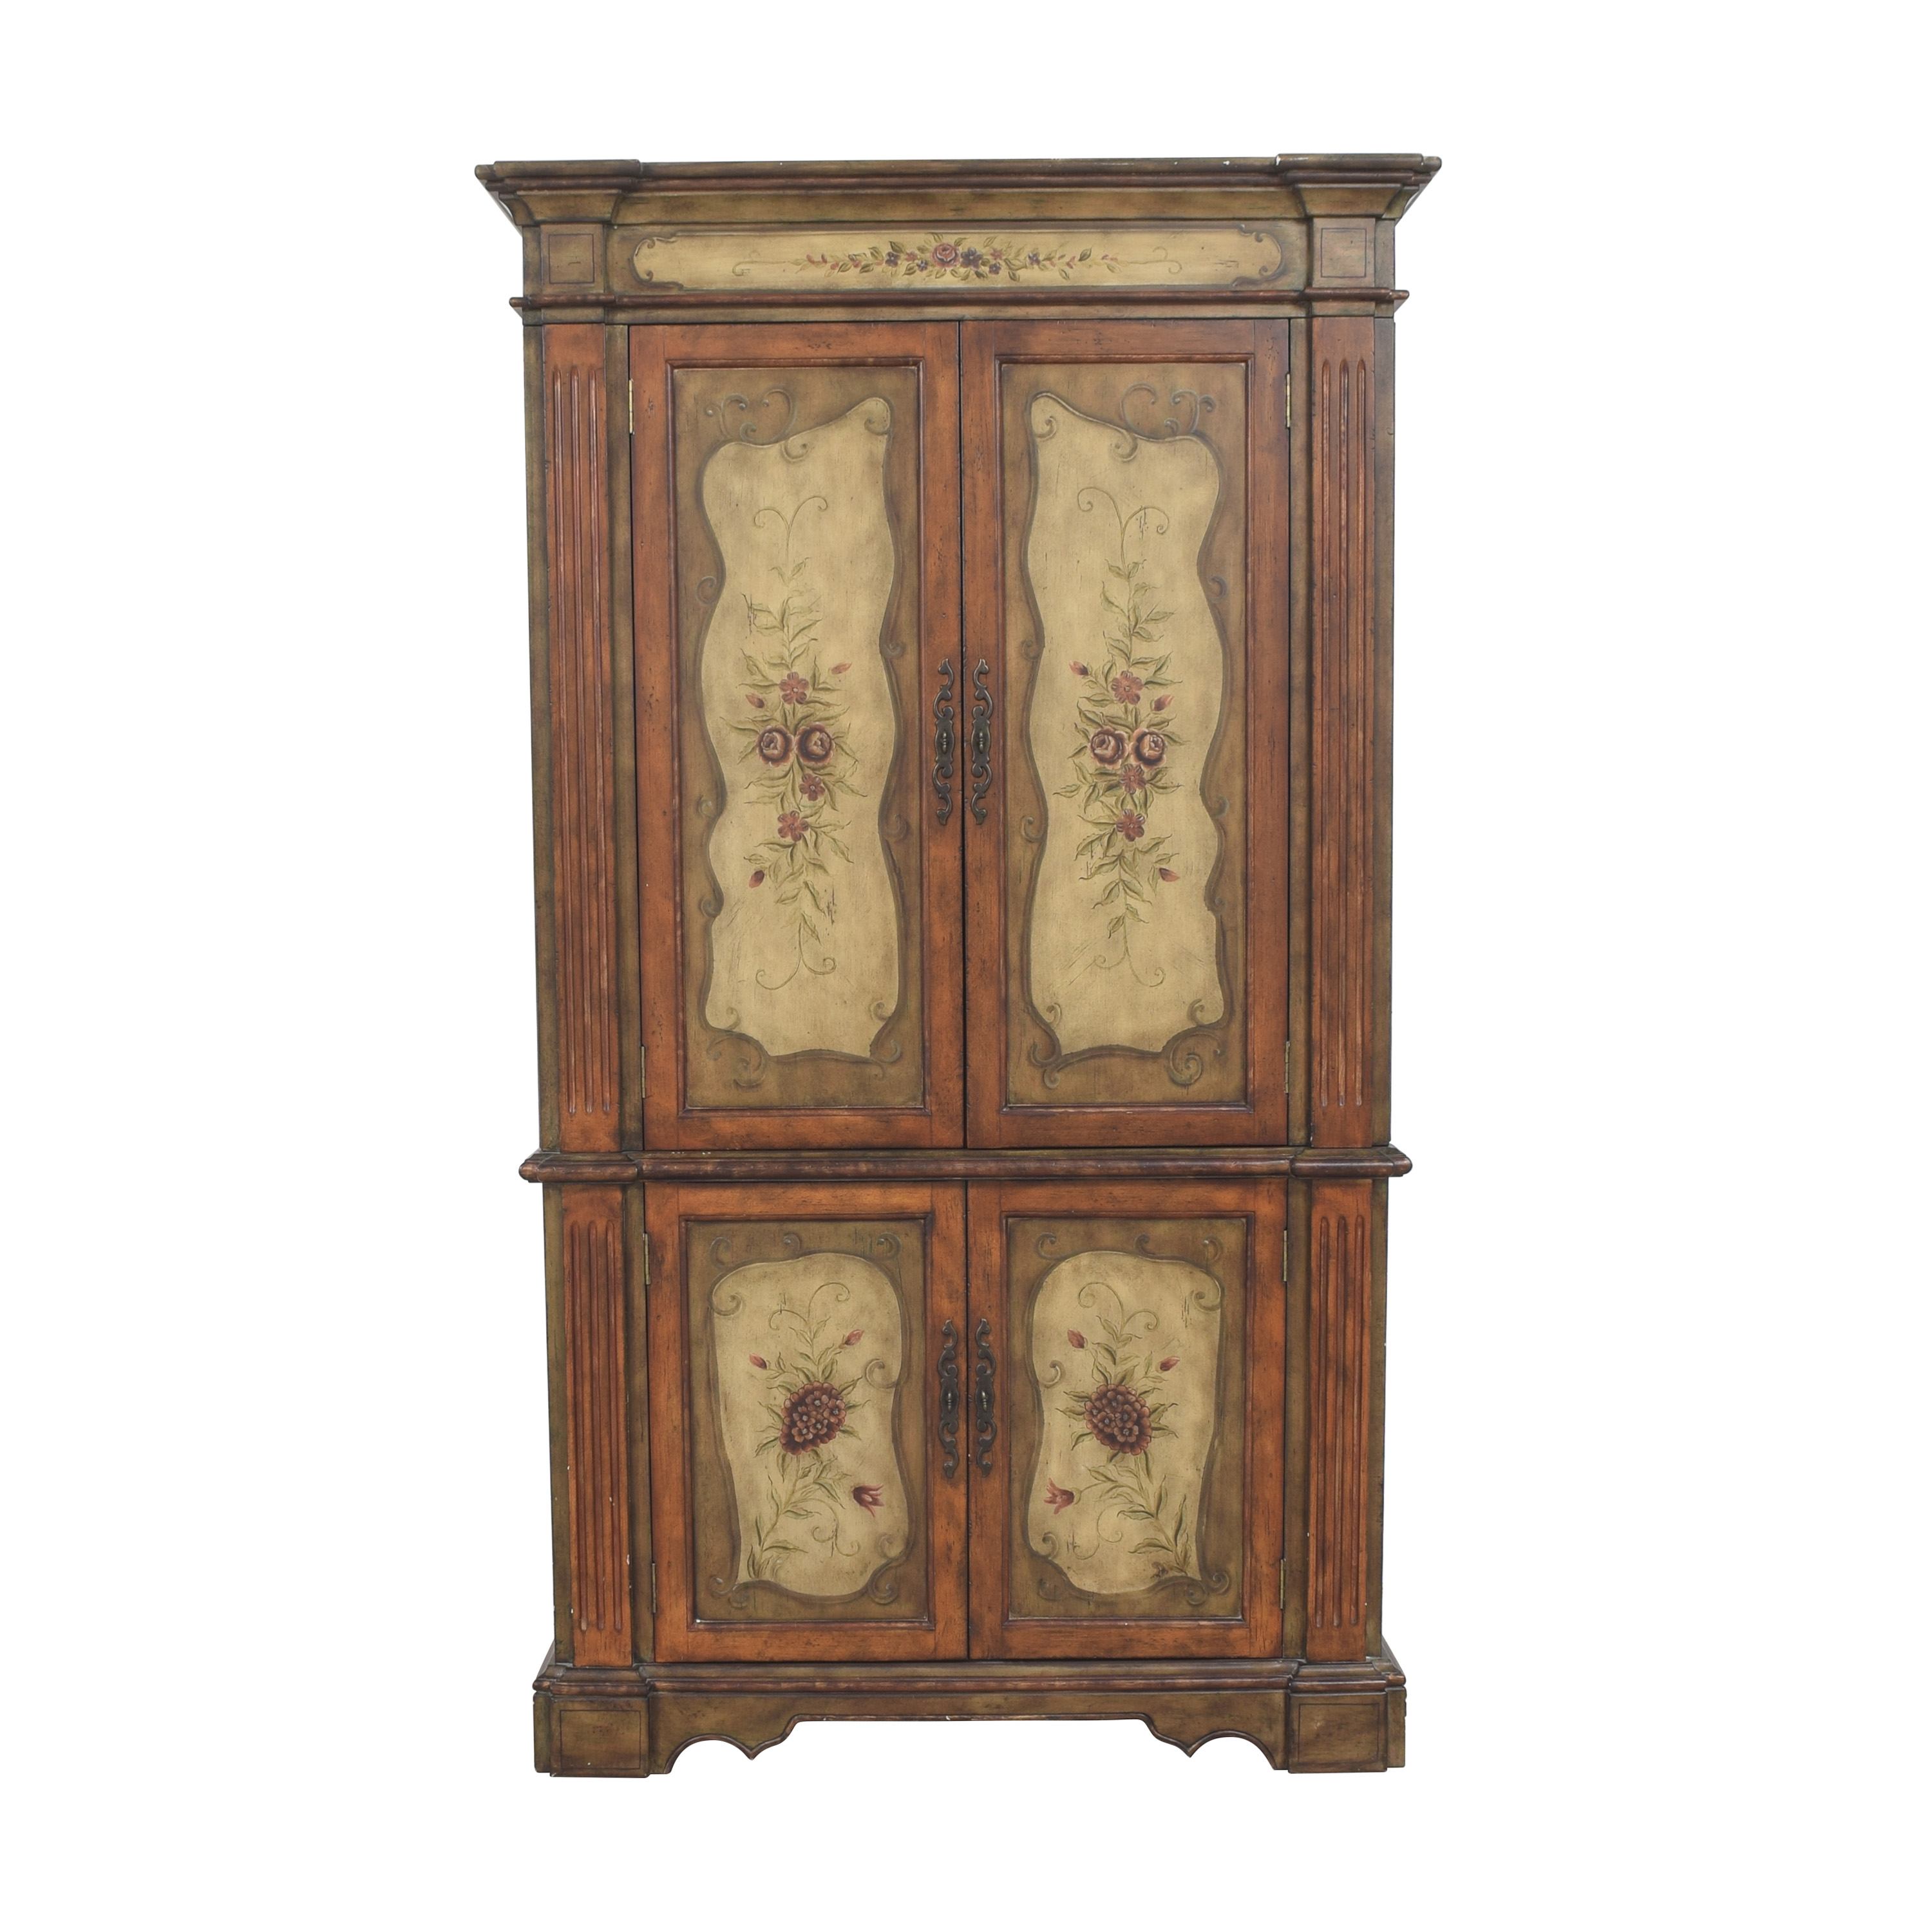 Hooker Furniture Hooker Furniture Seven Seas Floral Armoire nj